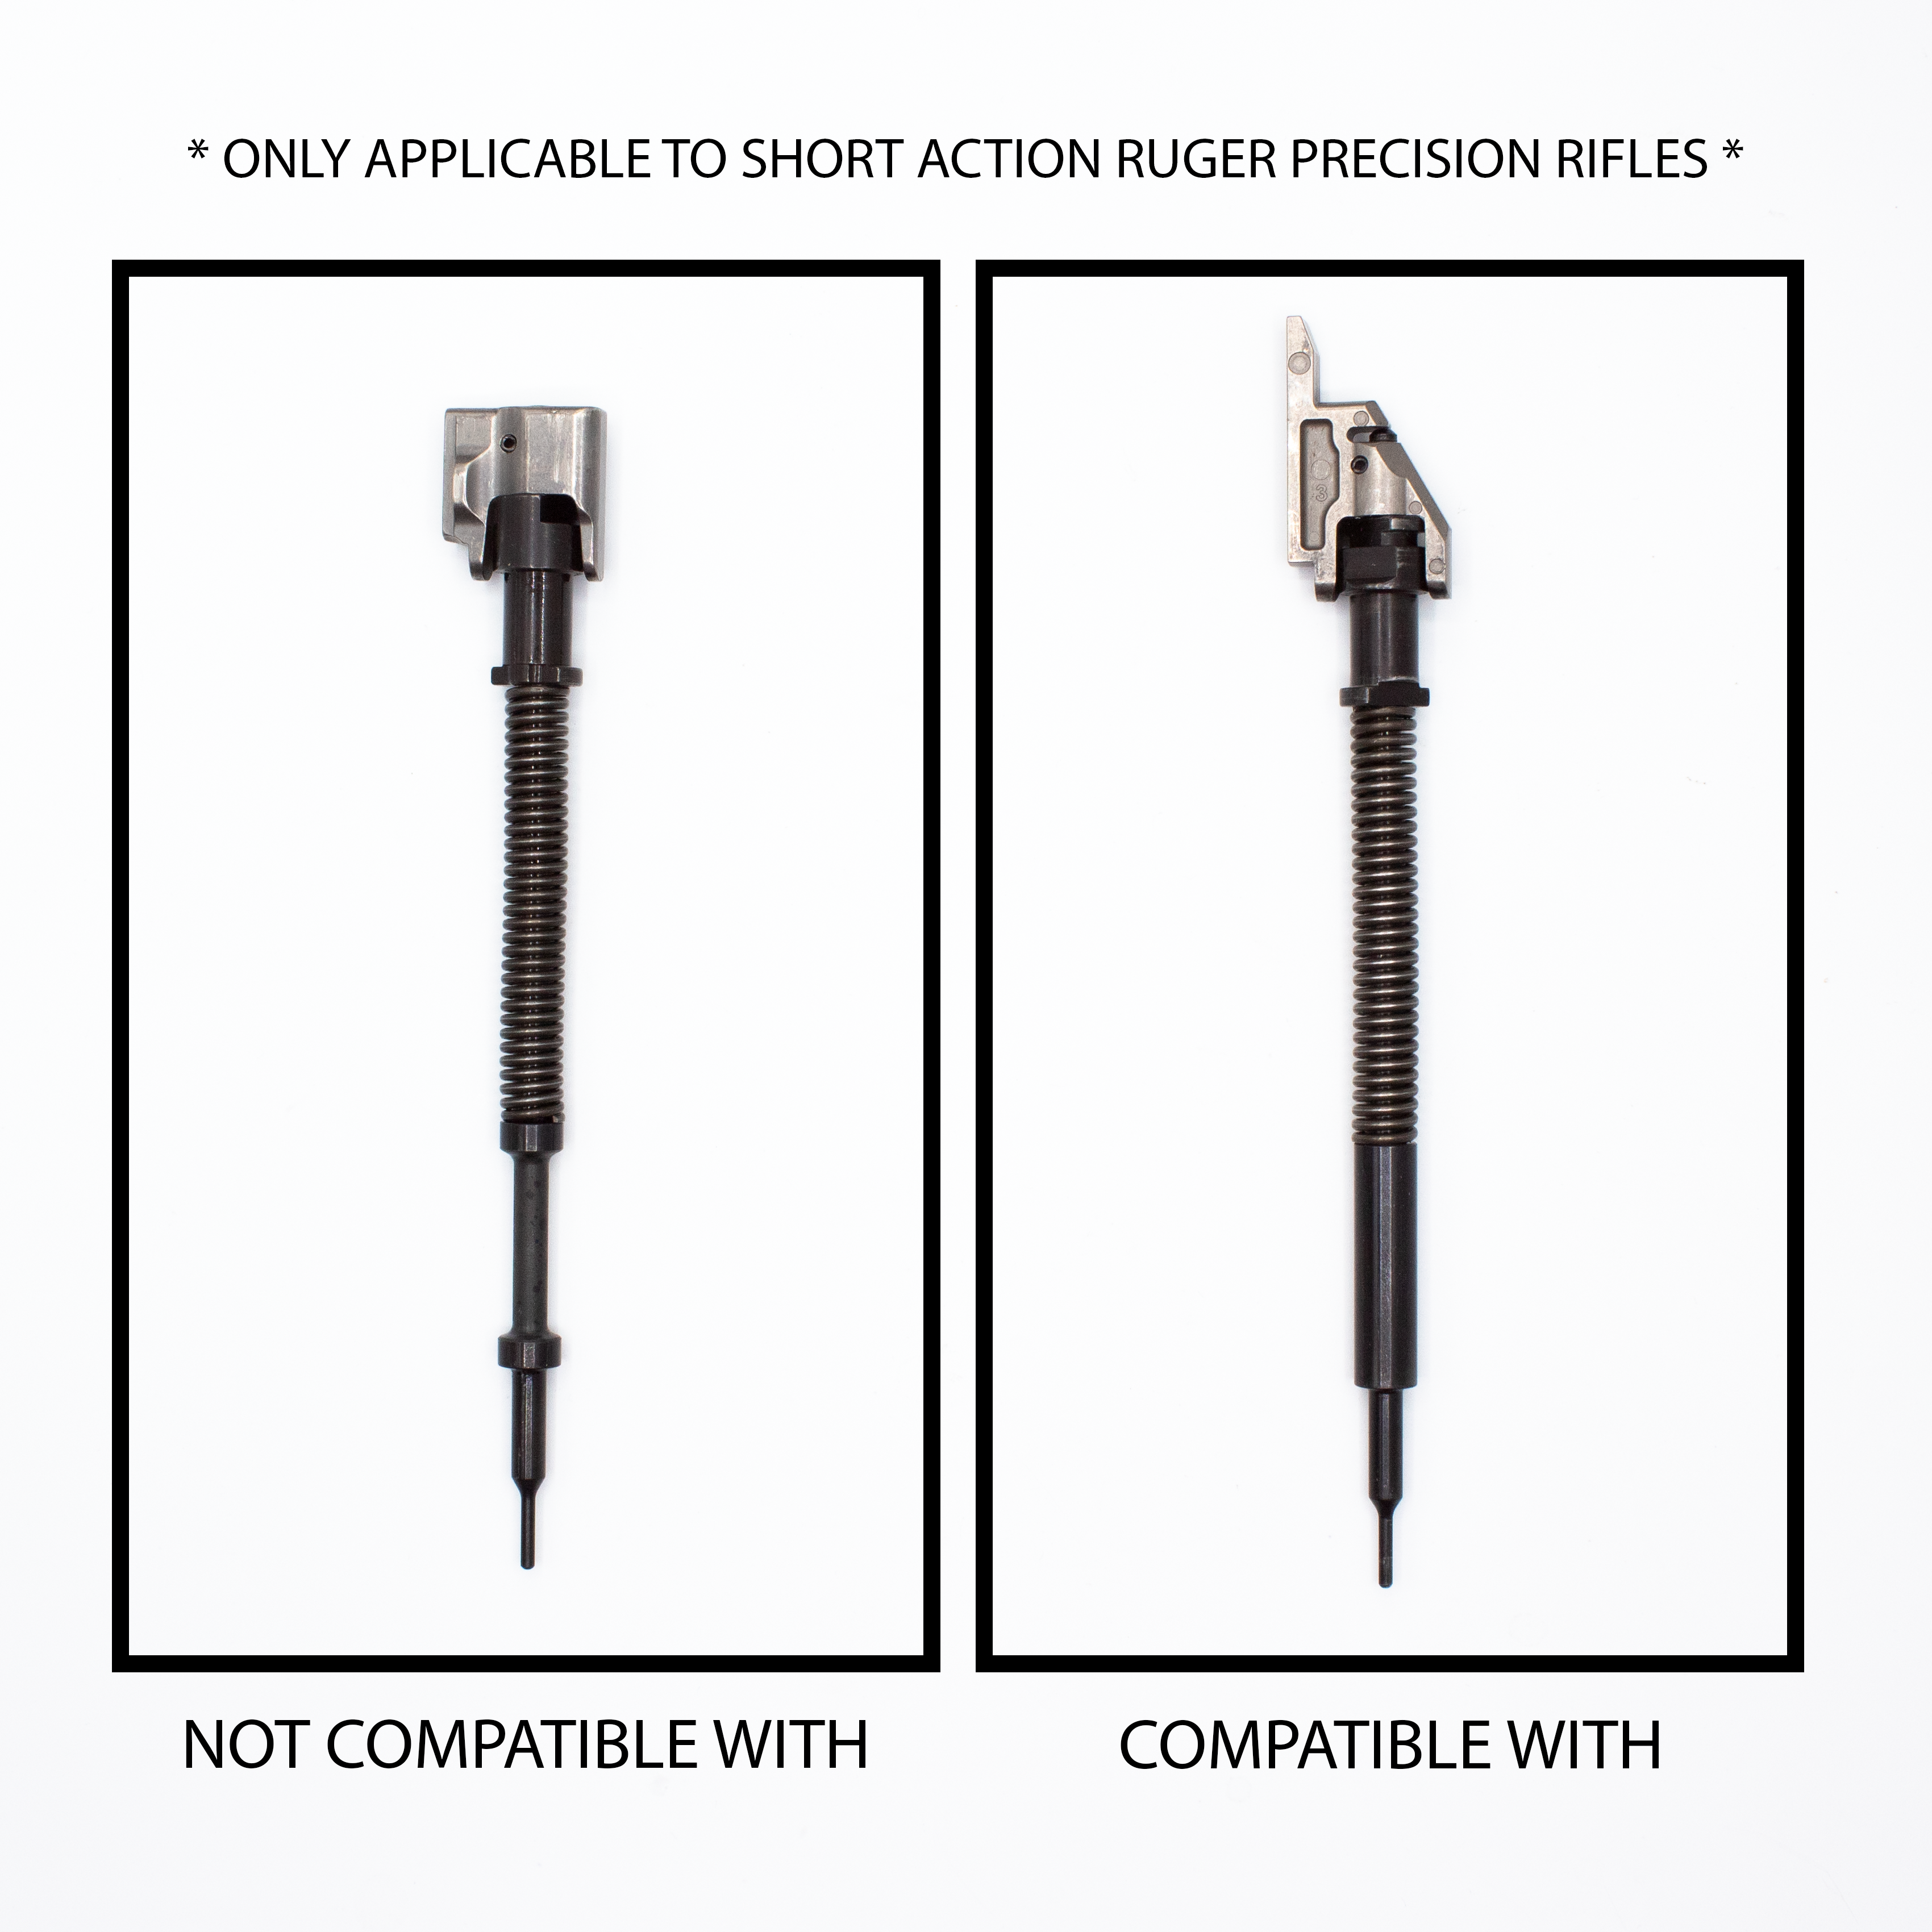 ruger-compatibility.png